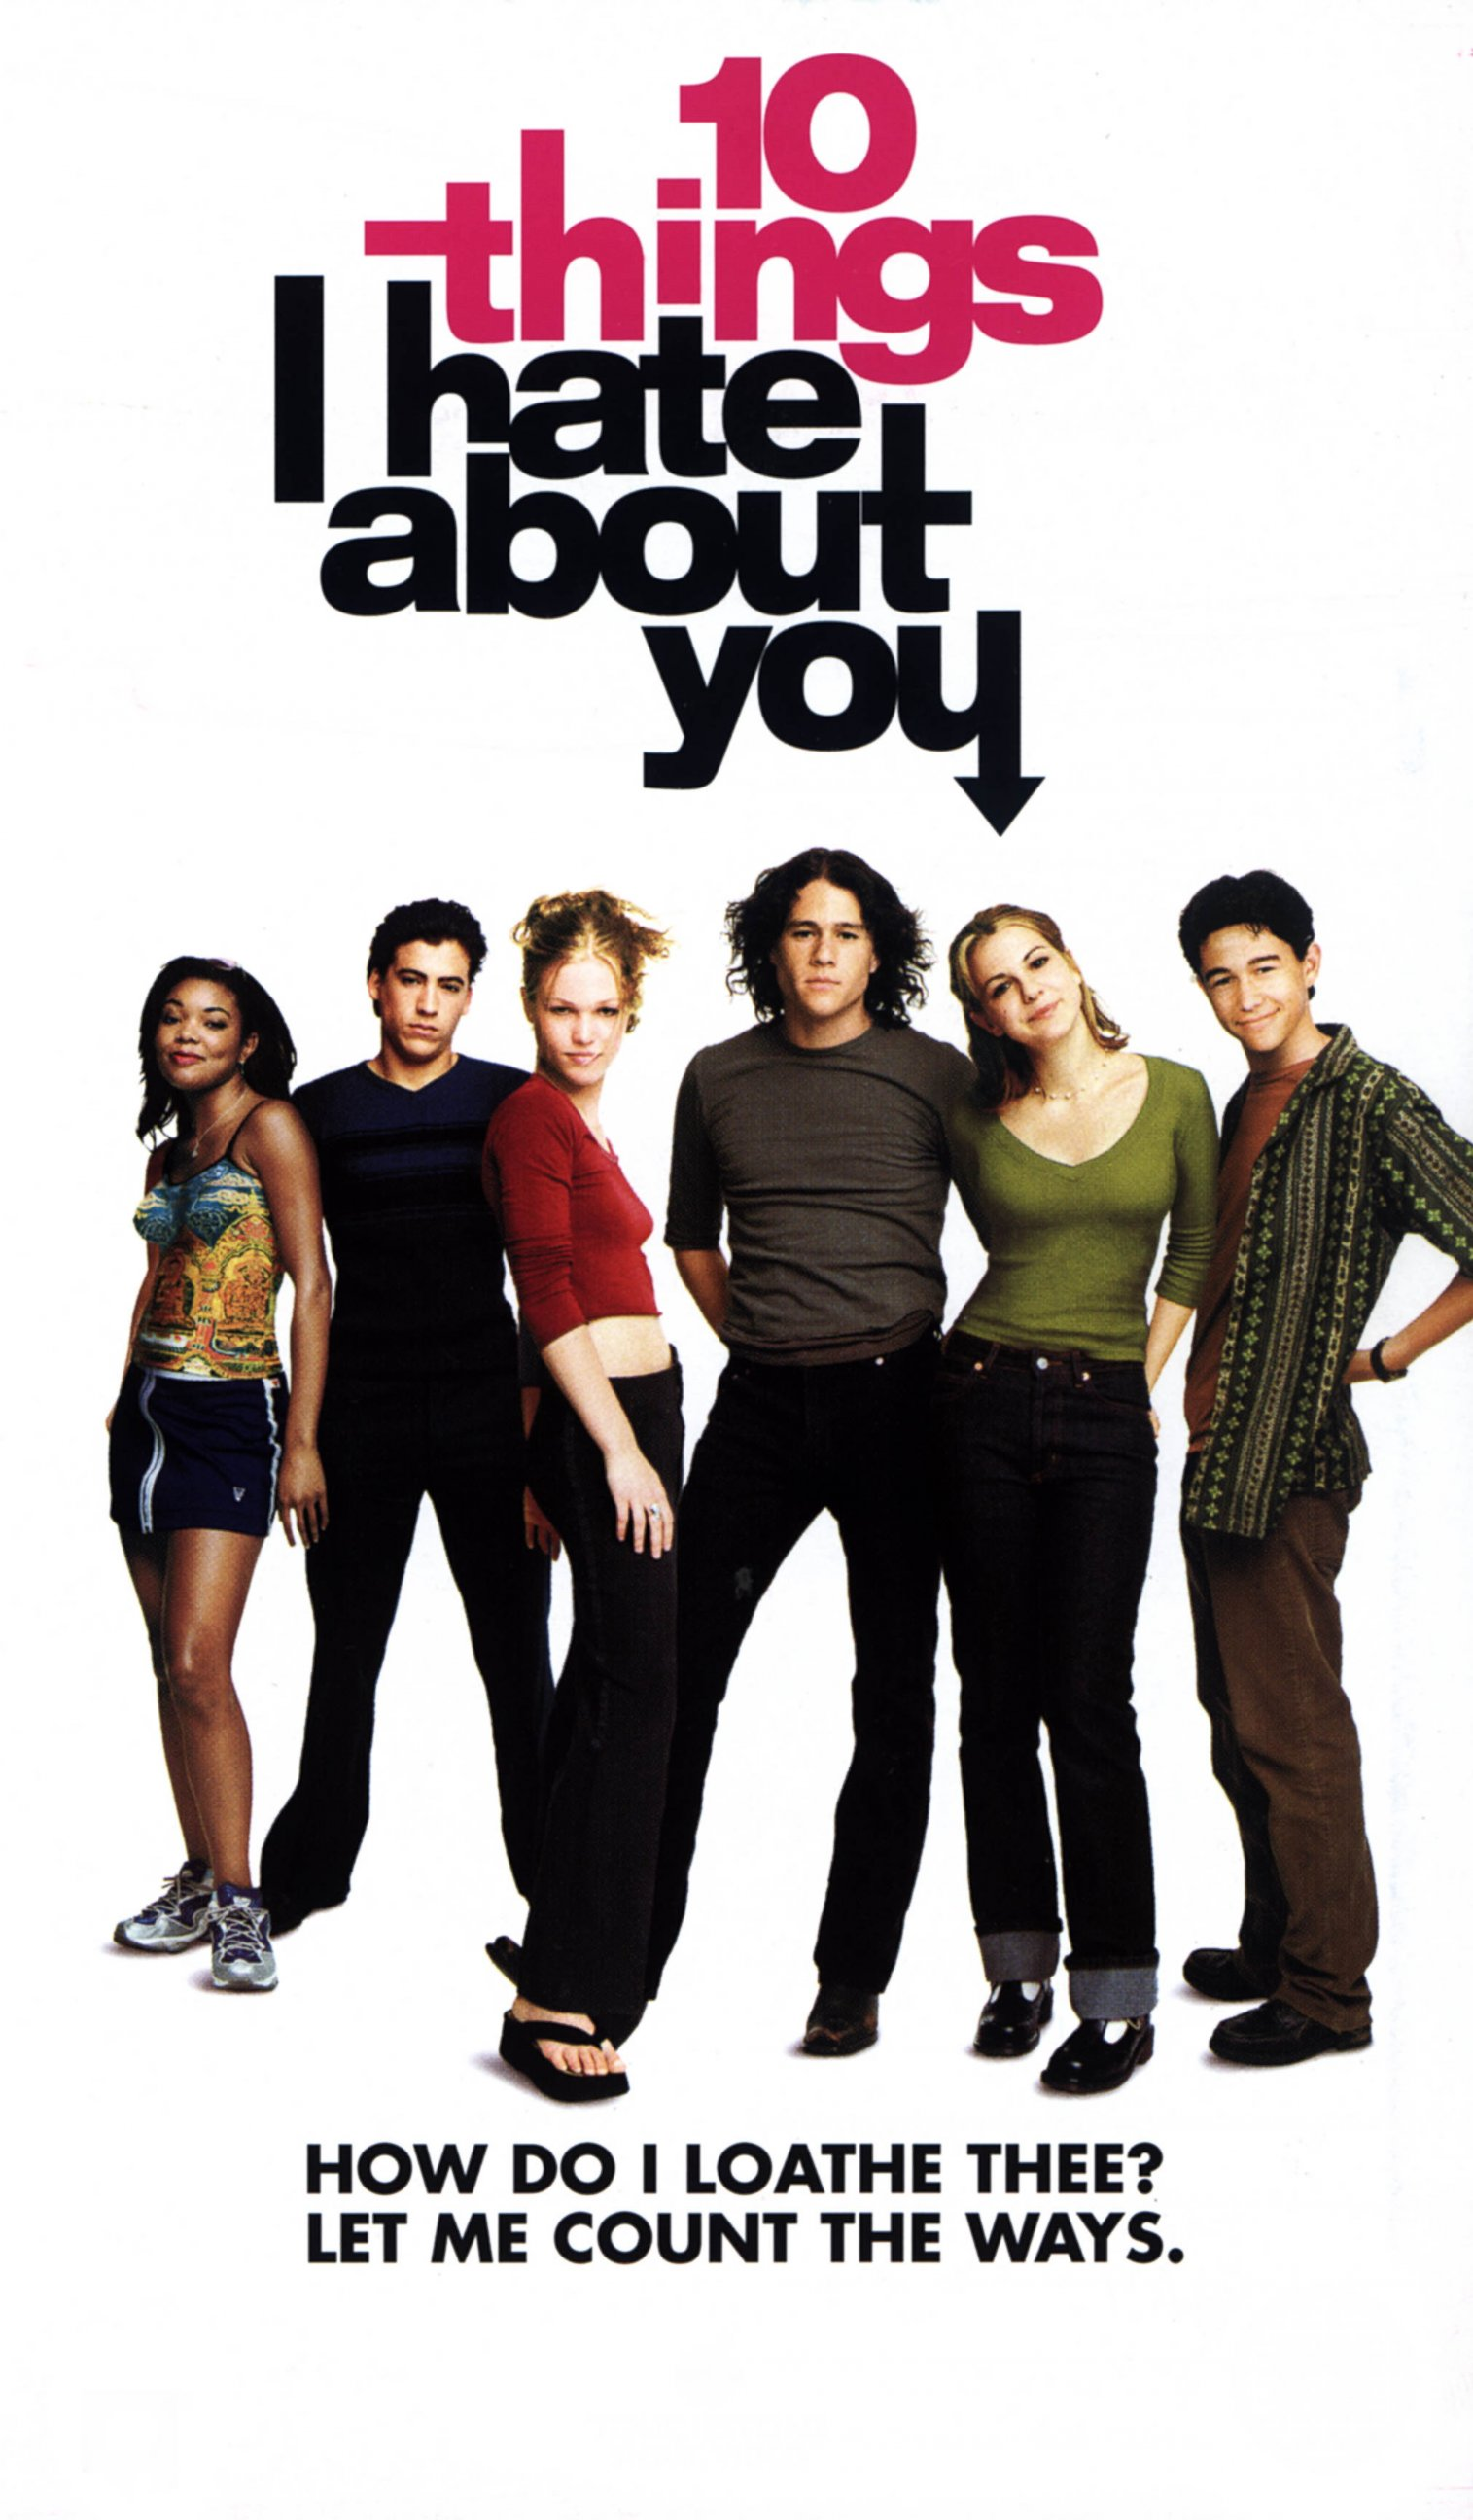 10 things i hate about you analytical essay The power of love in 10 things i hate about you and taming of the shrew 'the power of love adolescent relationships 10 things i hate about you essay.